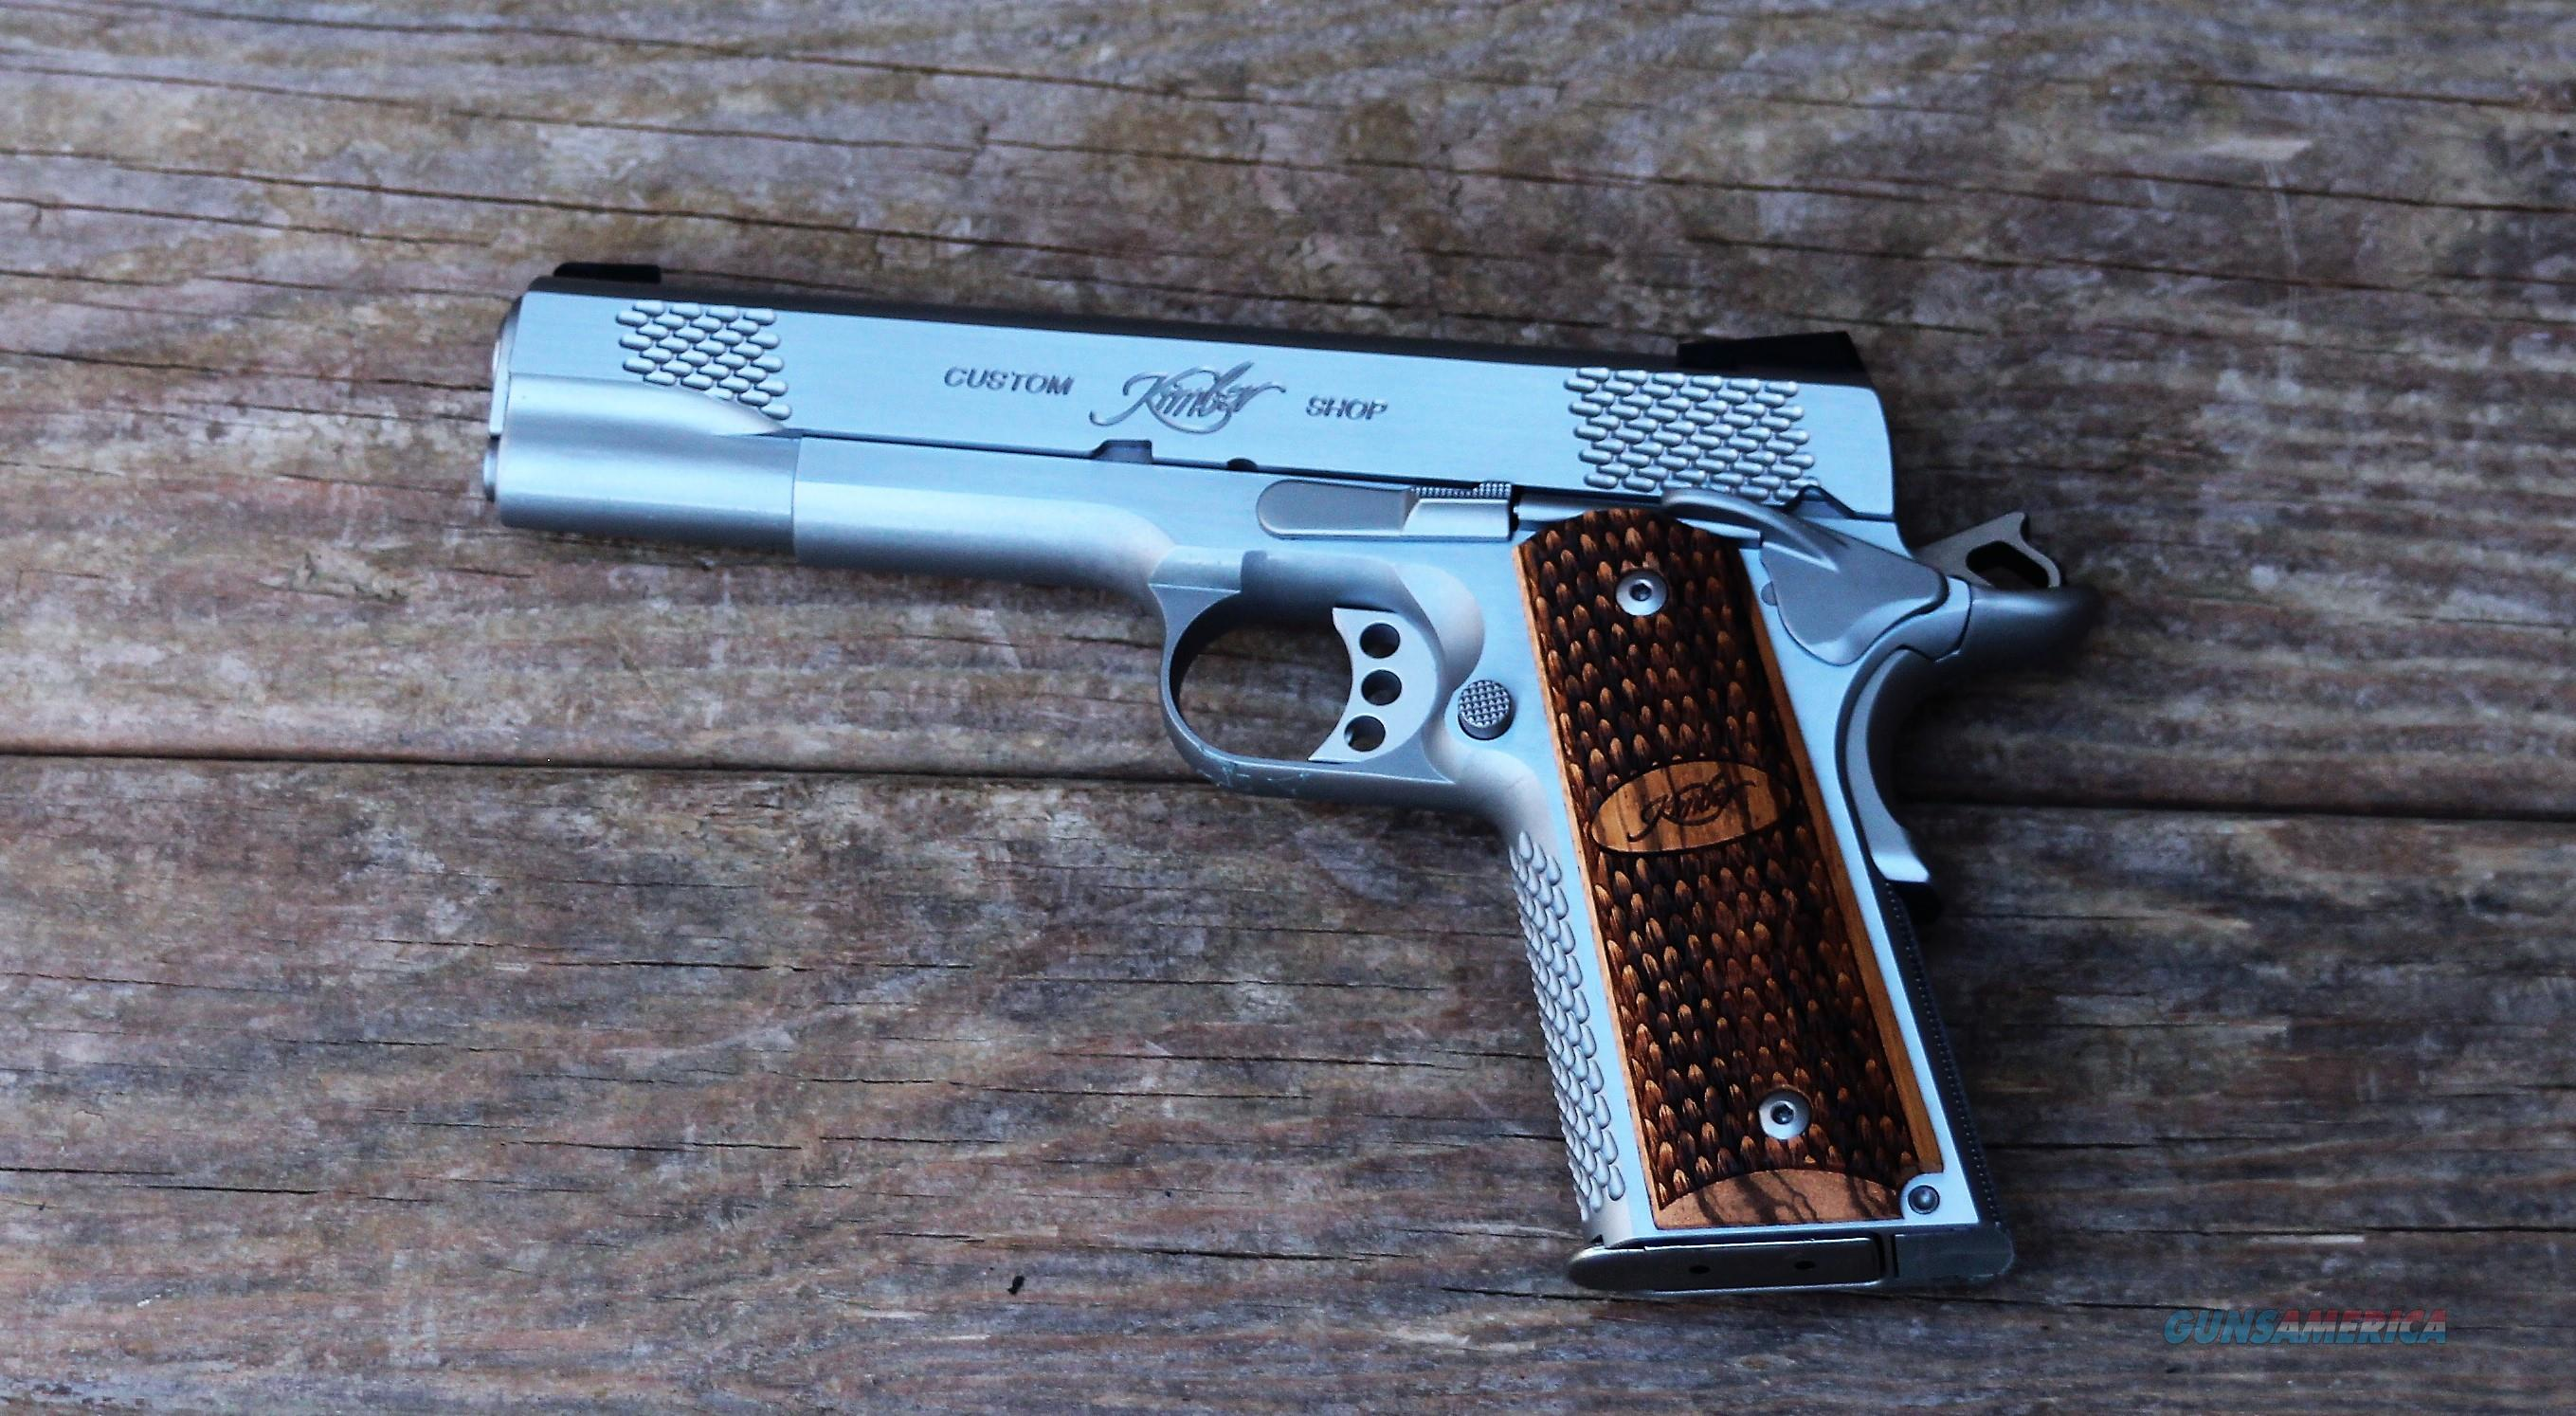 $115 Easy Pay  Kimber Custom With A Hard Case Founding Fathers July 4 1776 2nd Amendment Use ONLY Custom 1911 .45 ACP Raptor II Stainless match grade Barrel 5 in 8 Rd Magazine Tritium 3200181  Guns > Pistols > Kimber of America Pistols > 1911